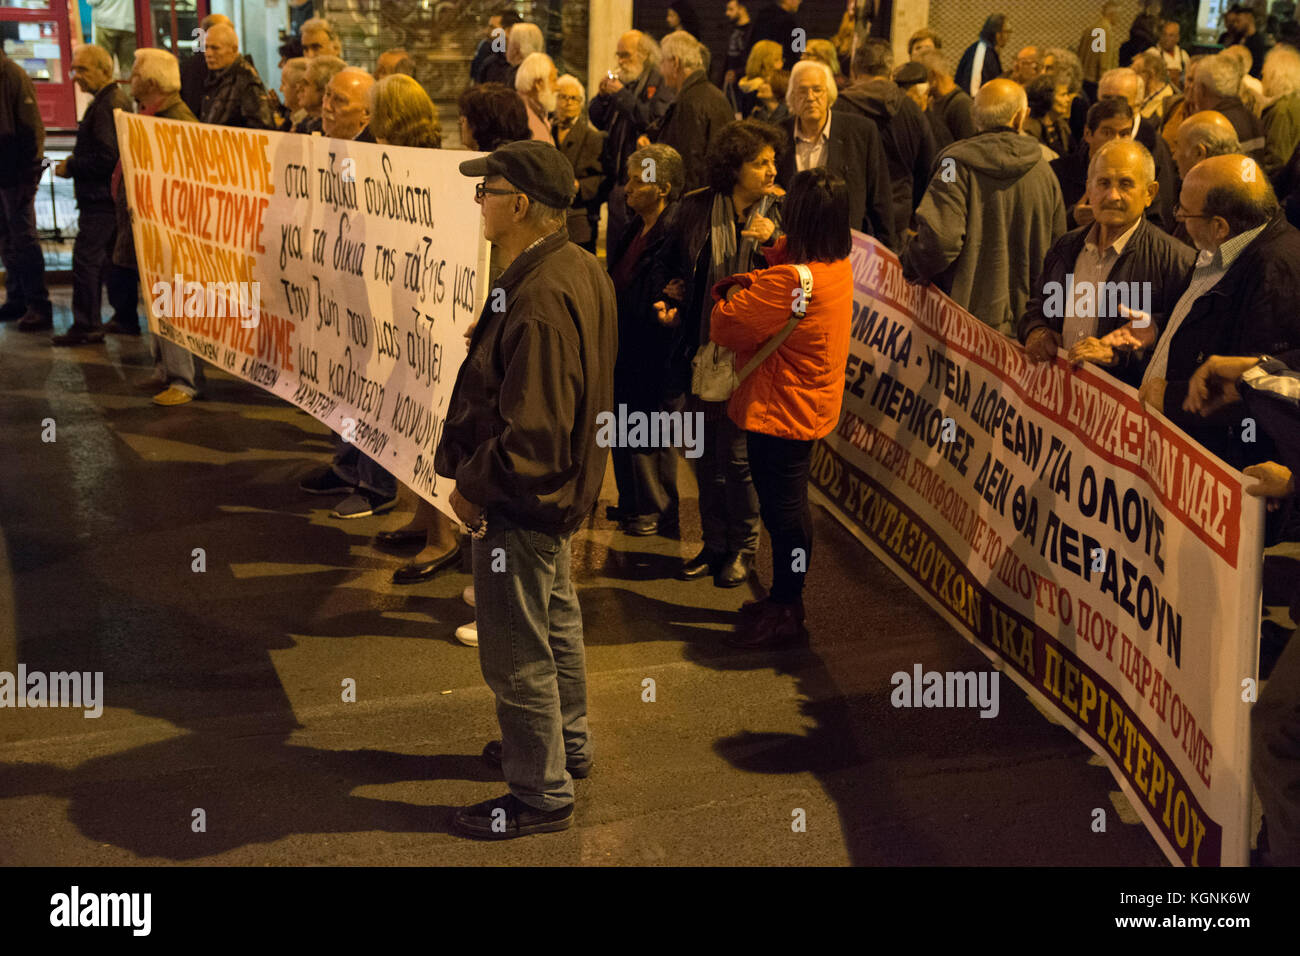 Athens, Greece. 9th Nov, 2017. Thousands march to the Greek parliament at Syntagma square holding banners and shouting - Stock Image